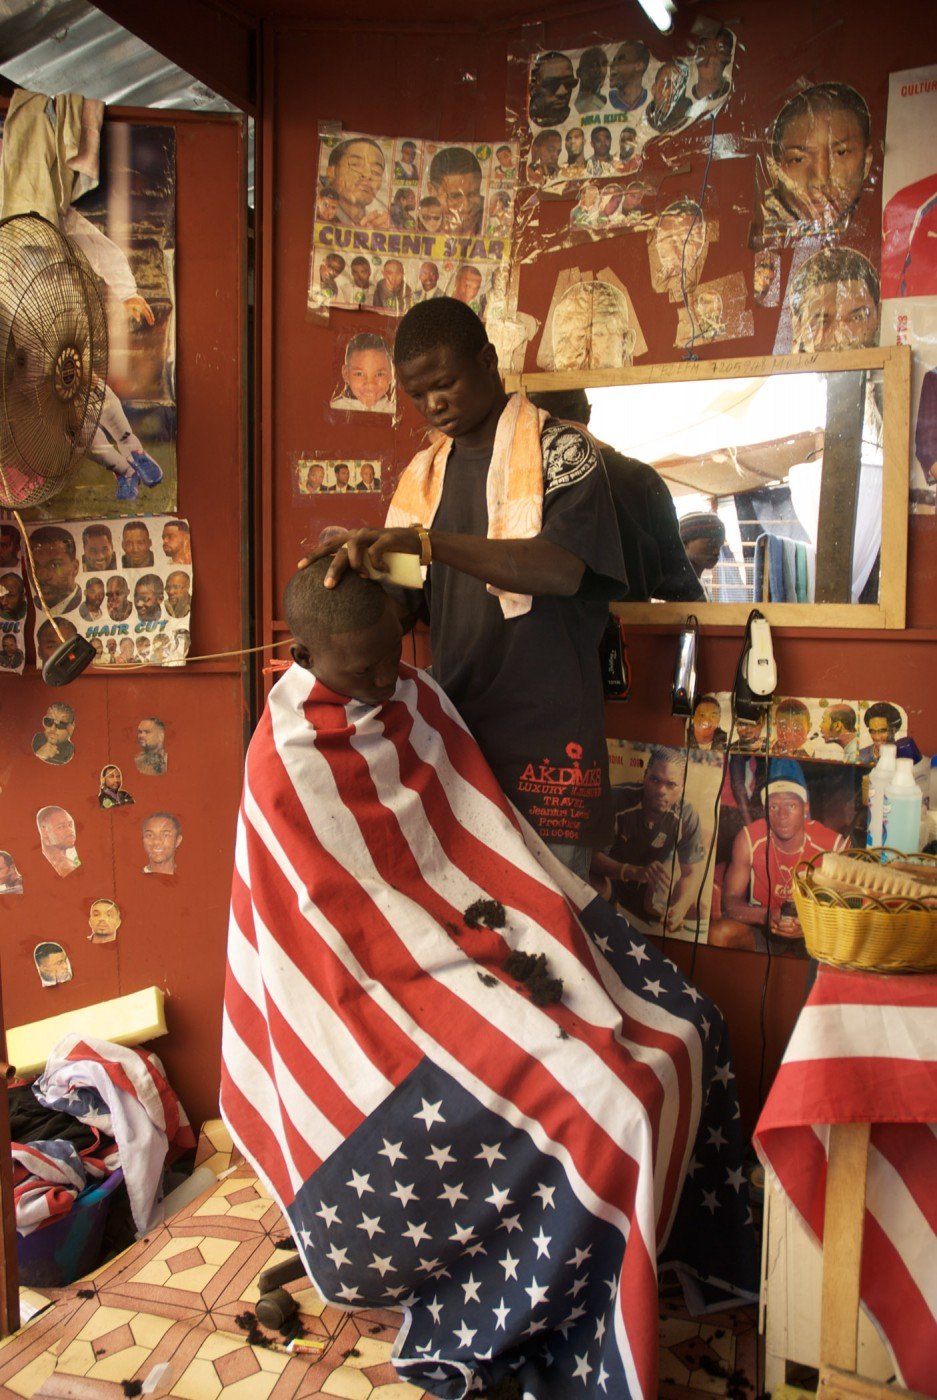 Vanley Burke, </span><span><em>Untitled, Barbershop in Gambia</em>, </span><span>2007